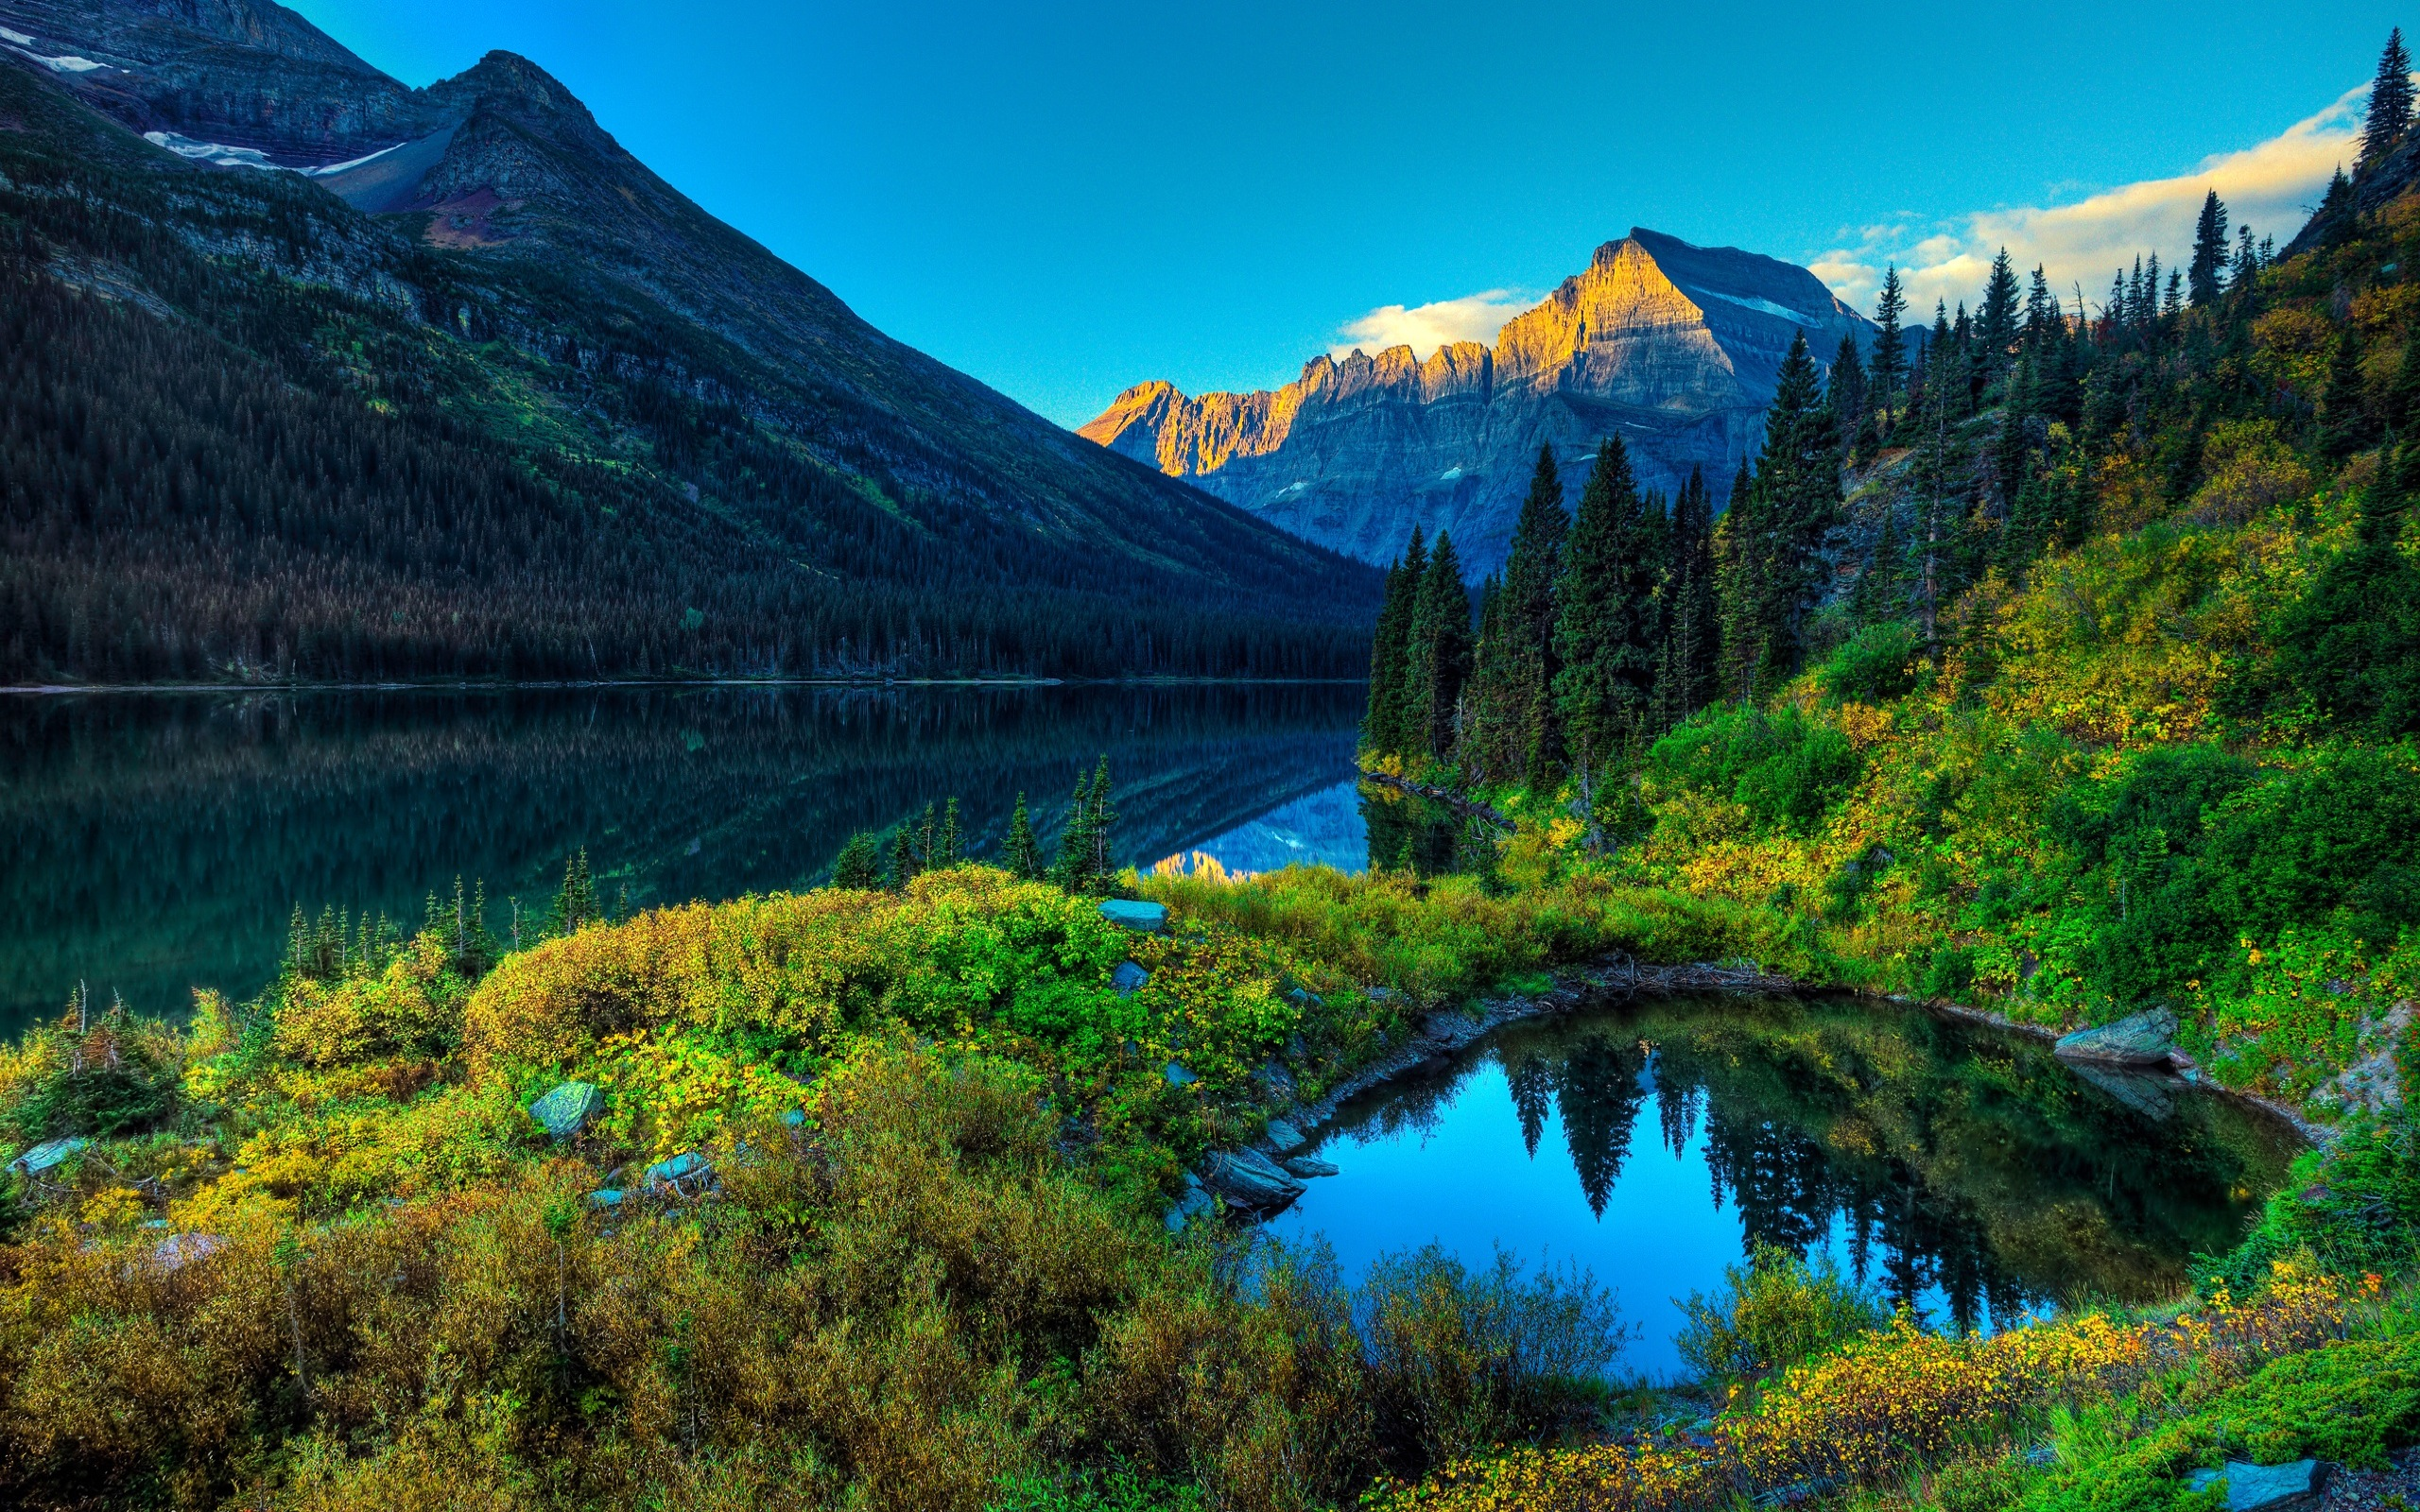 download natural scenery hd wallpapers gallery